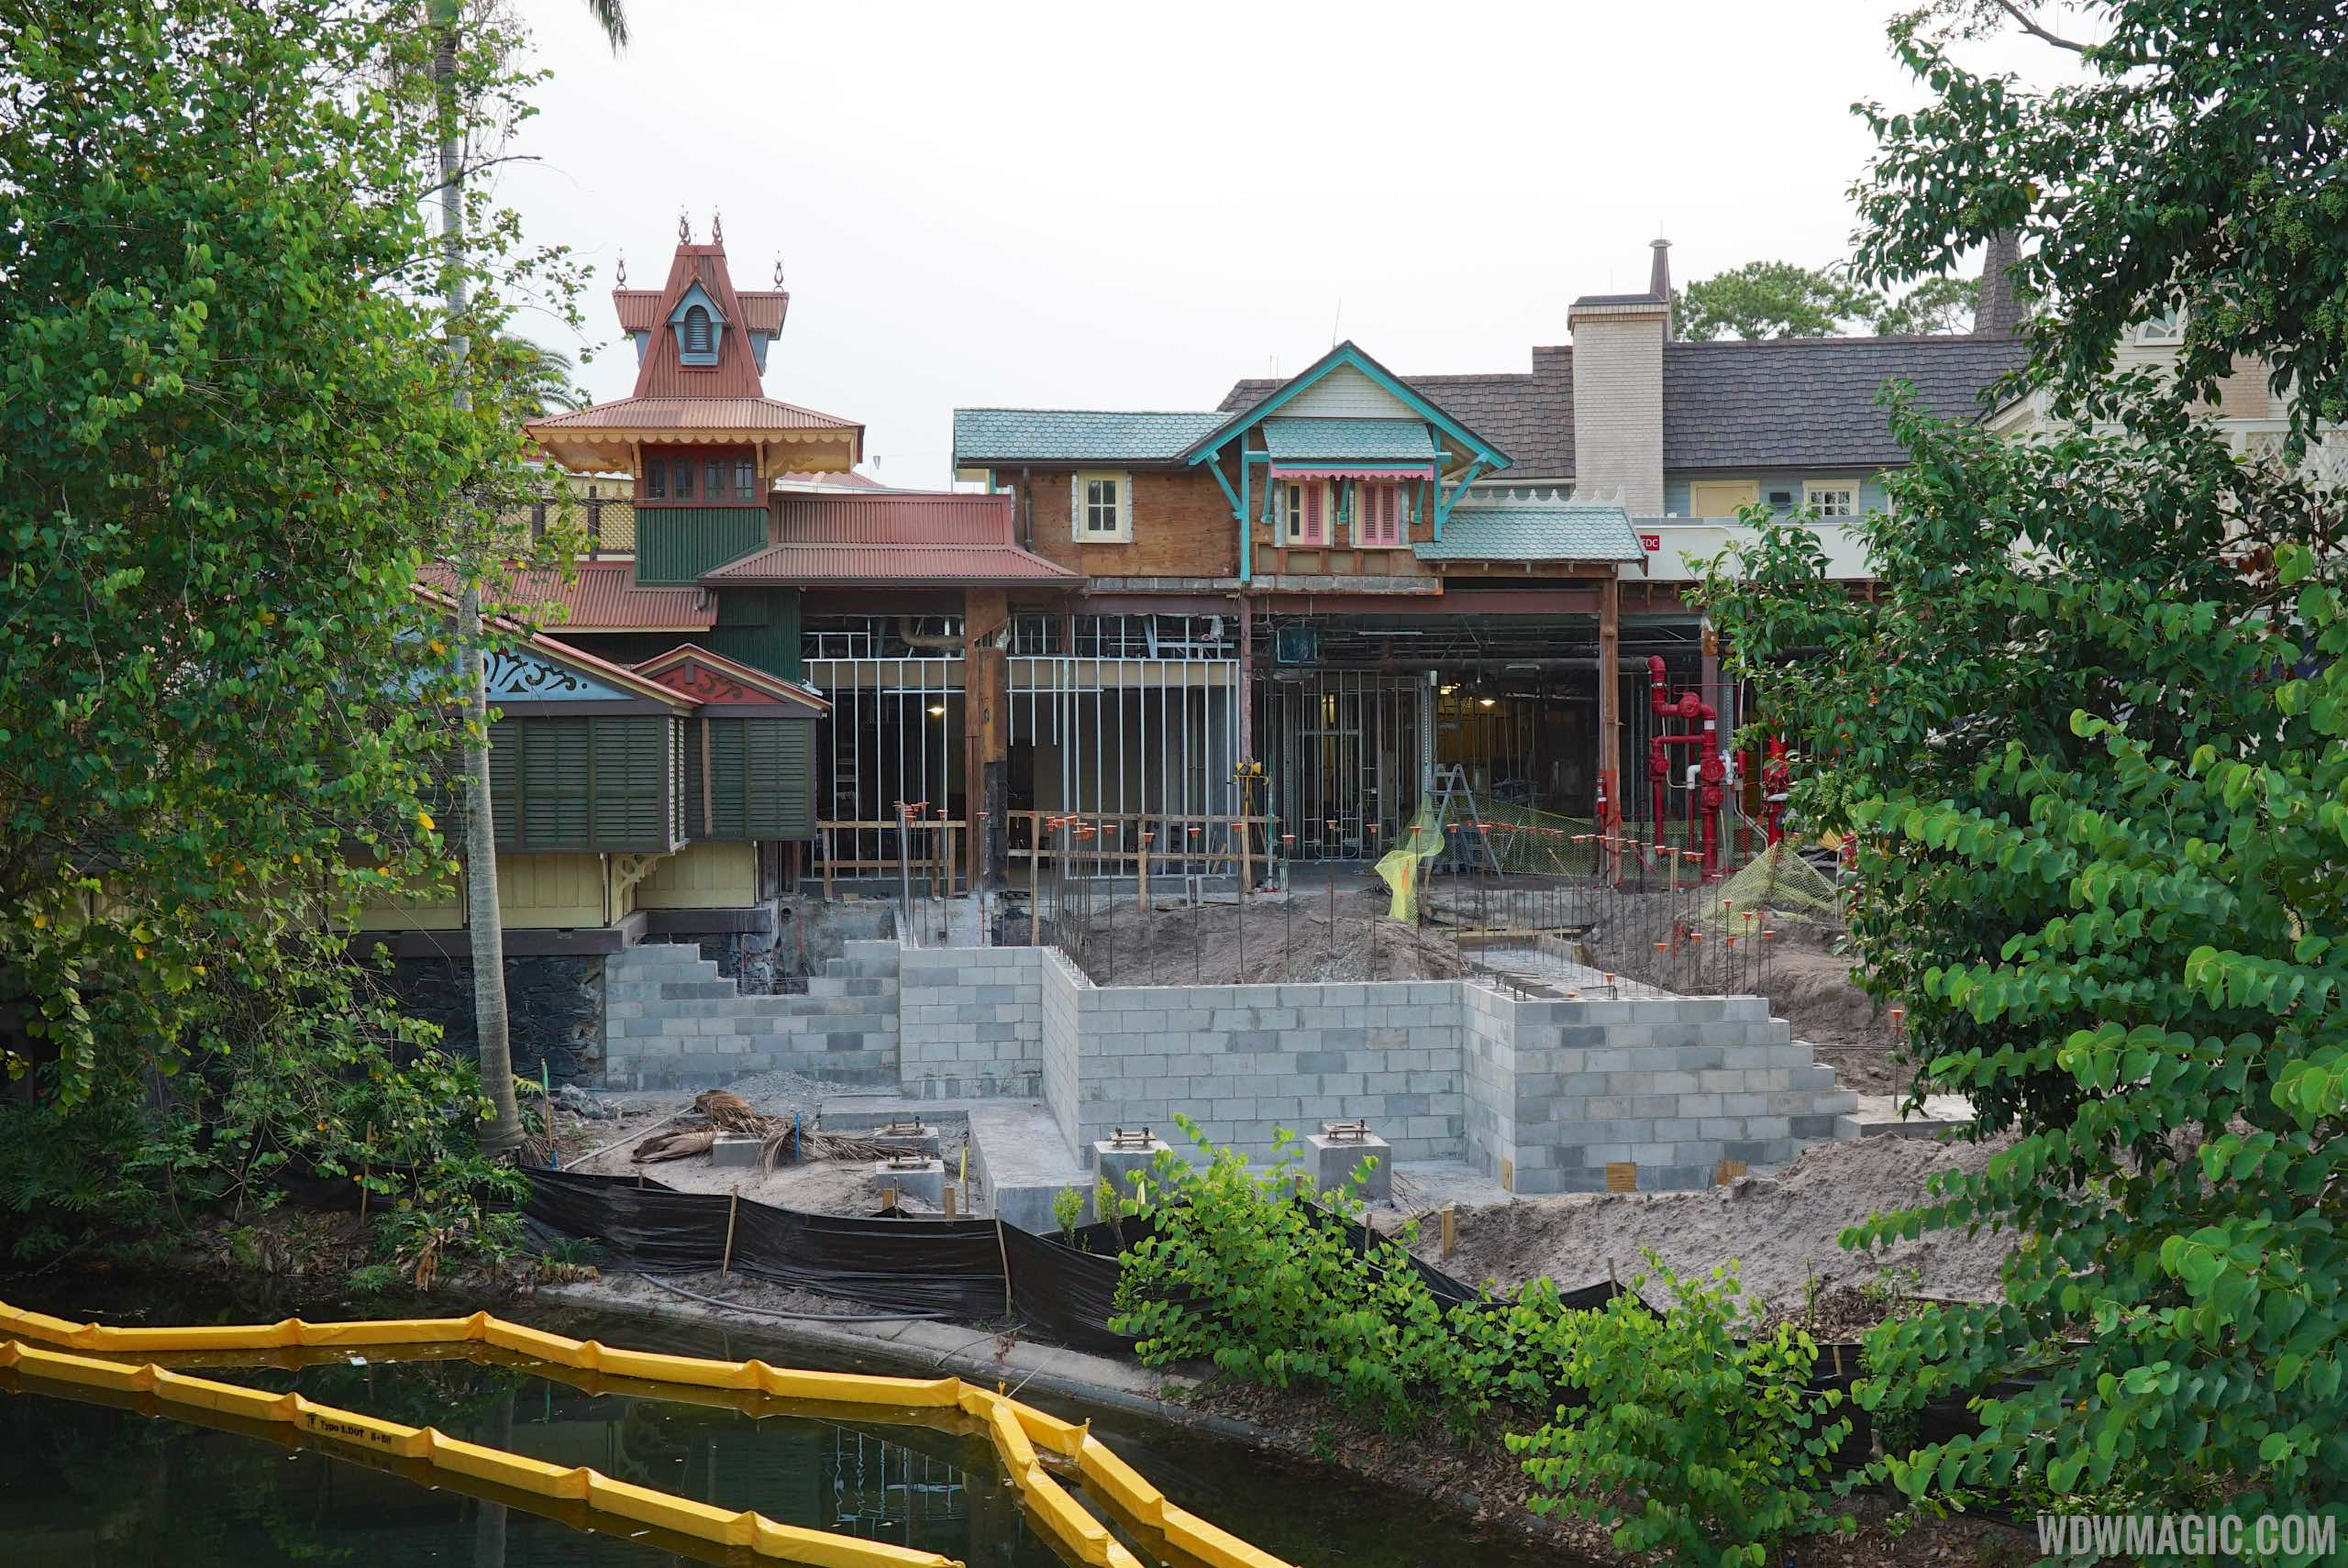 Jungle Cruise Skipper Canteen under construction in Adventureland